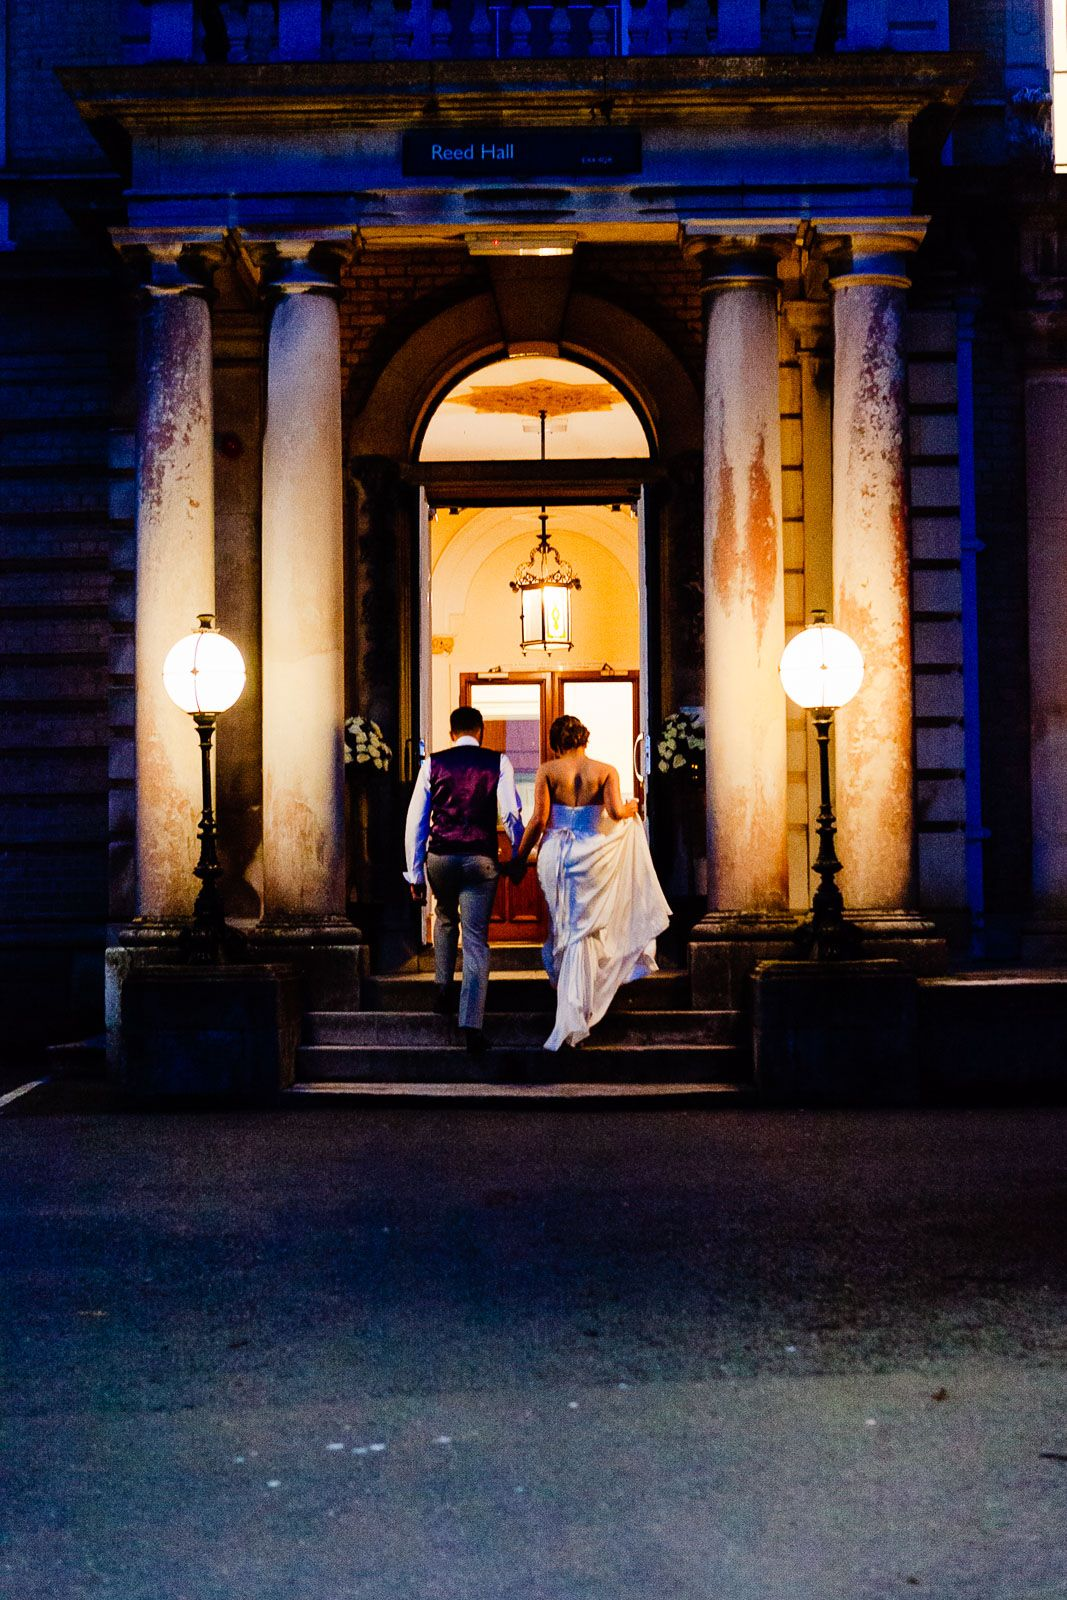 night wedding photography by Italy destination wedding photographer Elizabeth Armitage